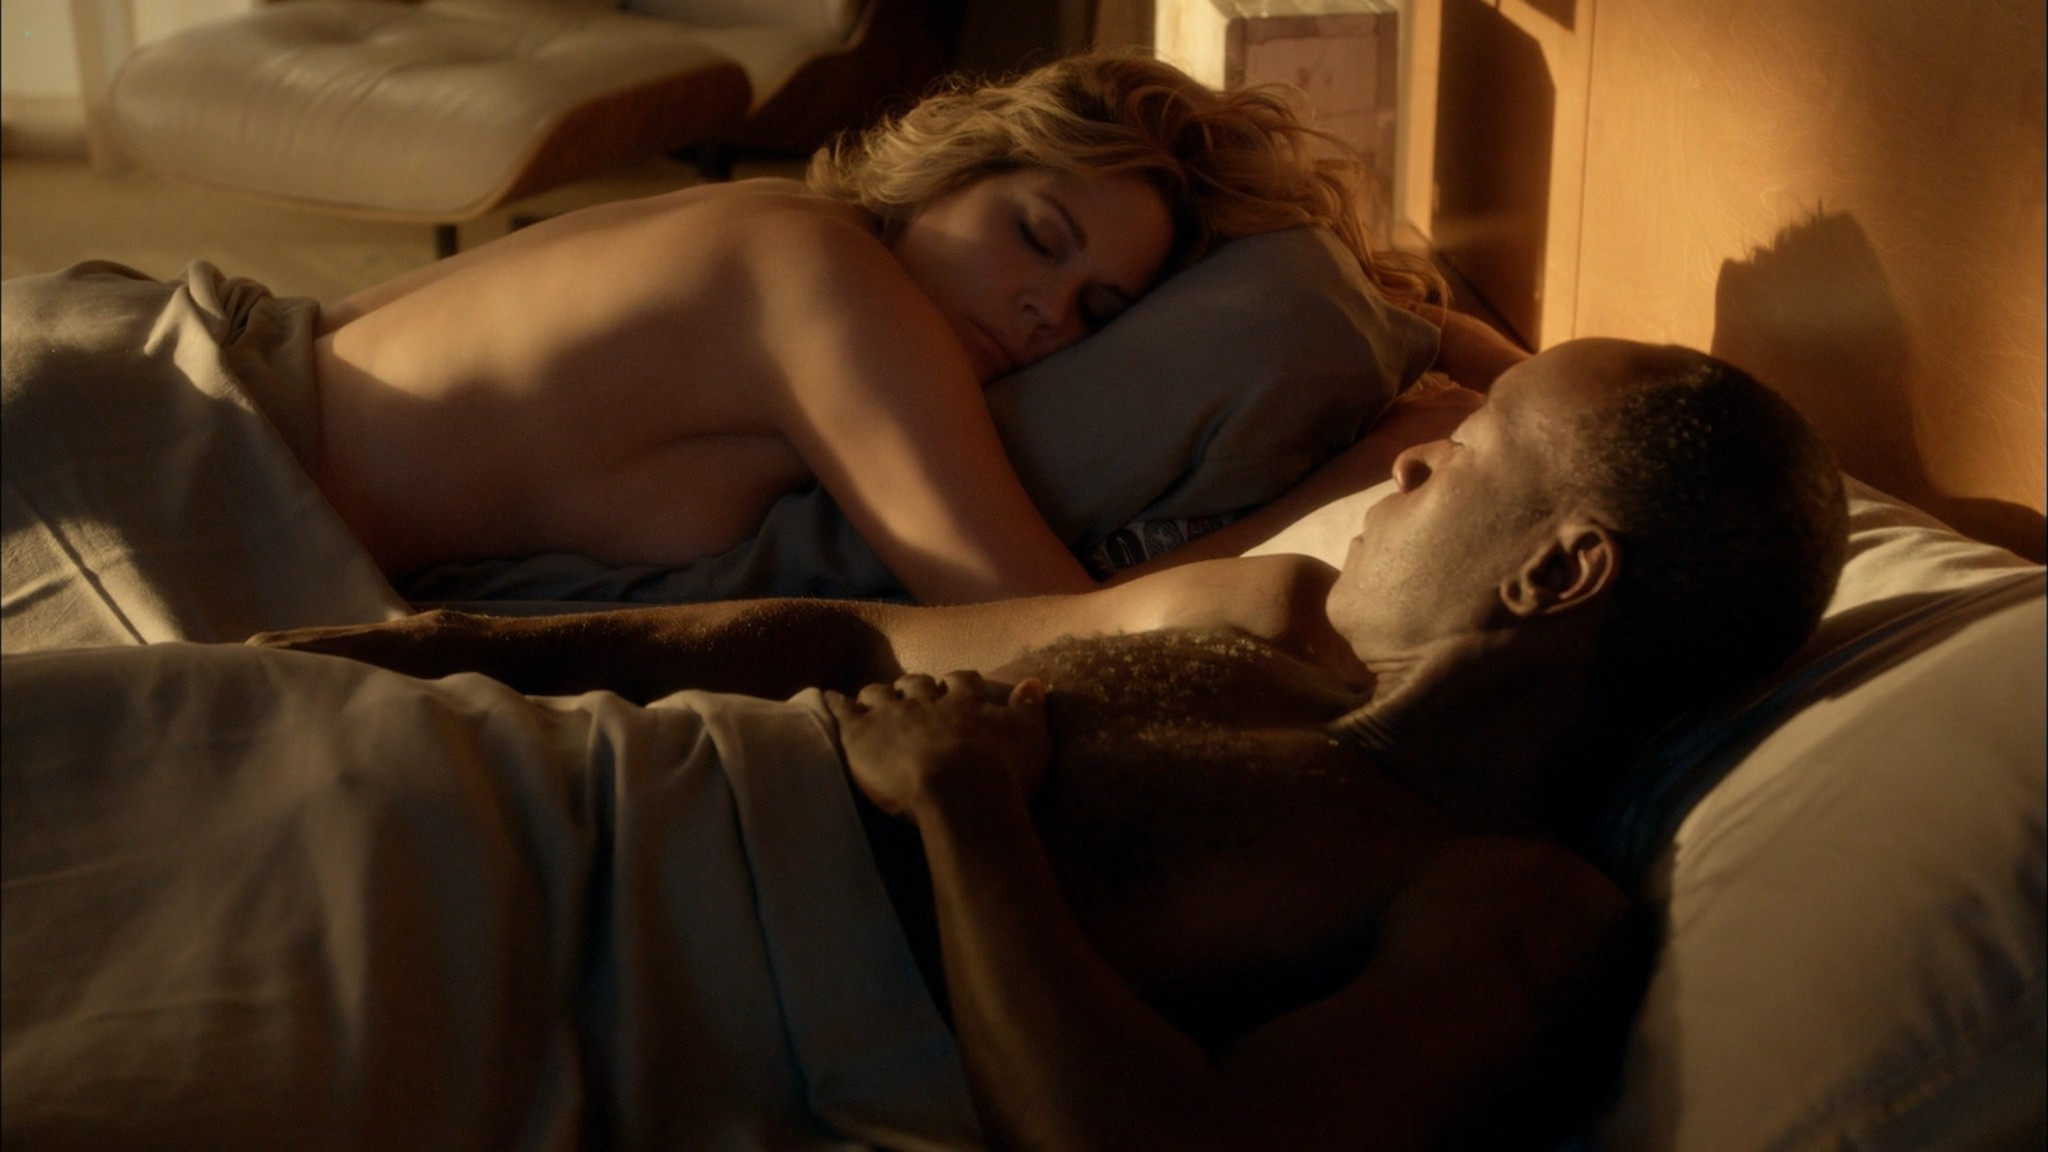 Alicia Witt topless Kristen Bell Valorie Curry and other sex and hot House of Lies 2015 S4 1080p Web 6